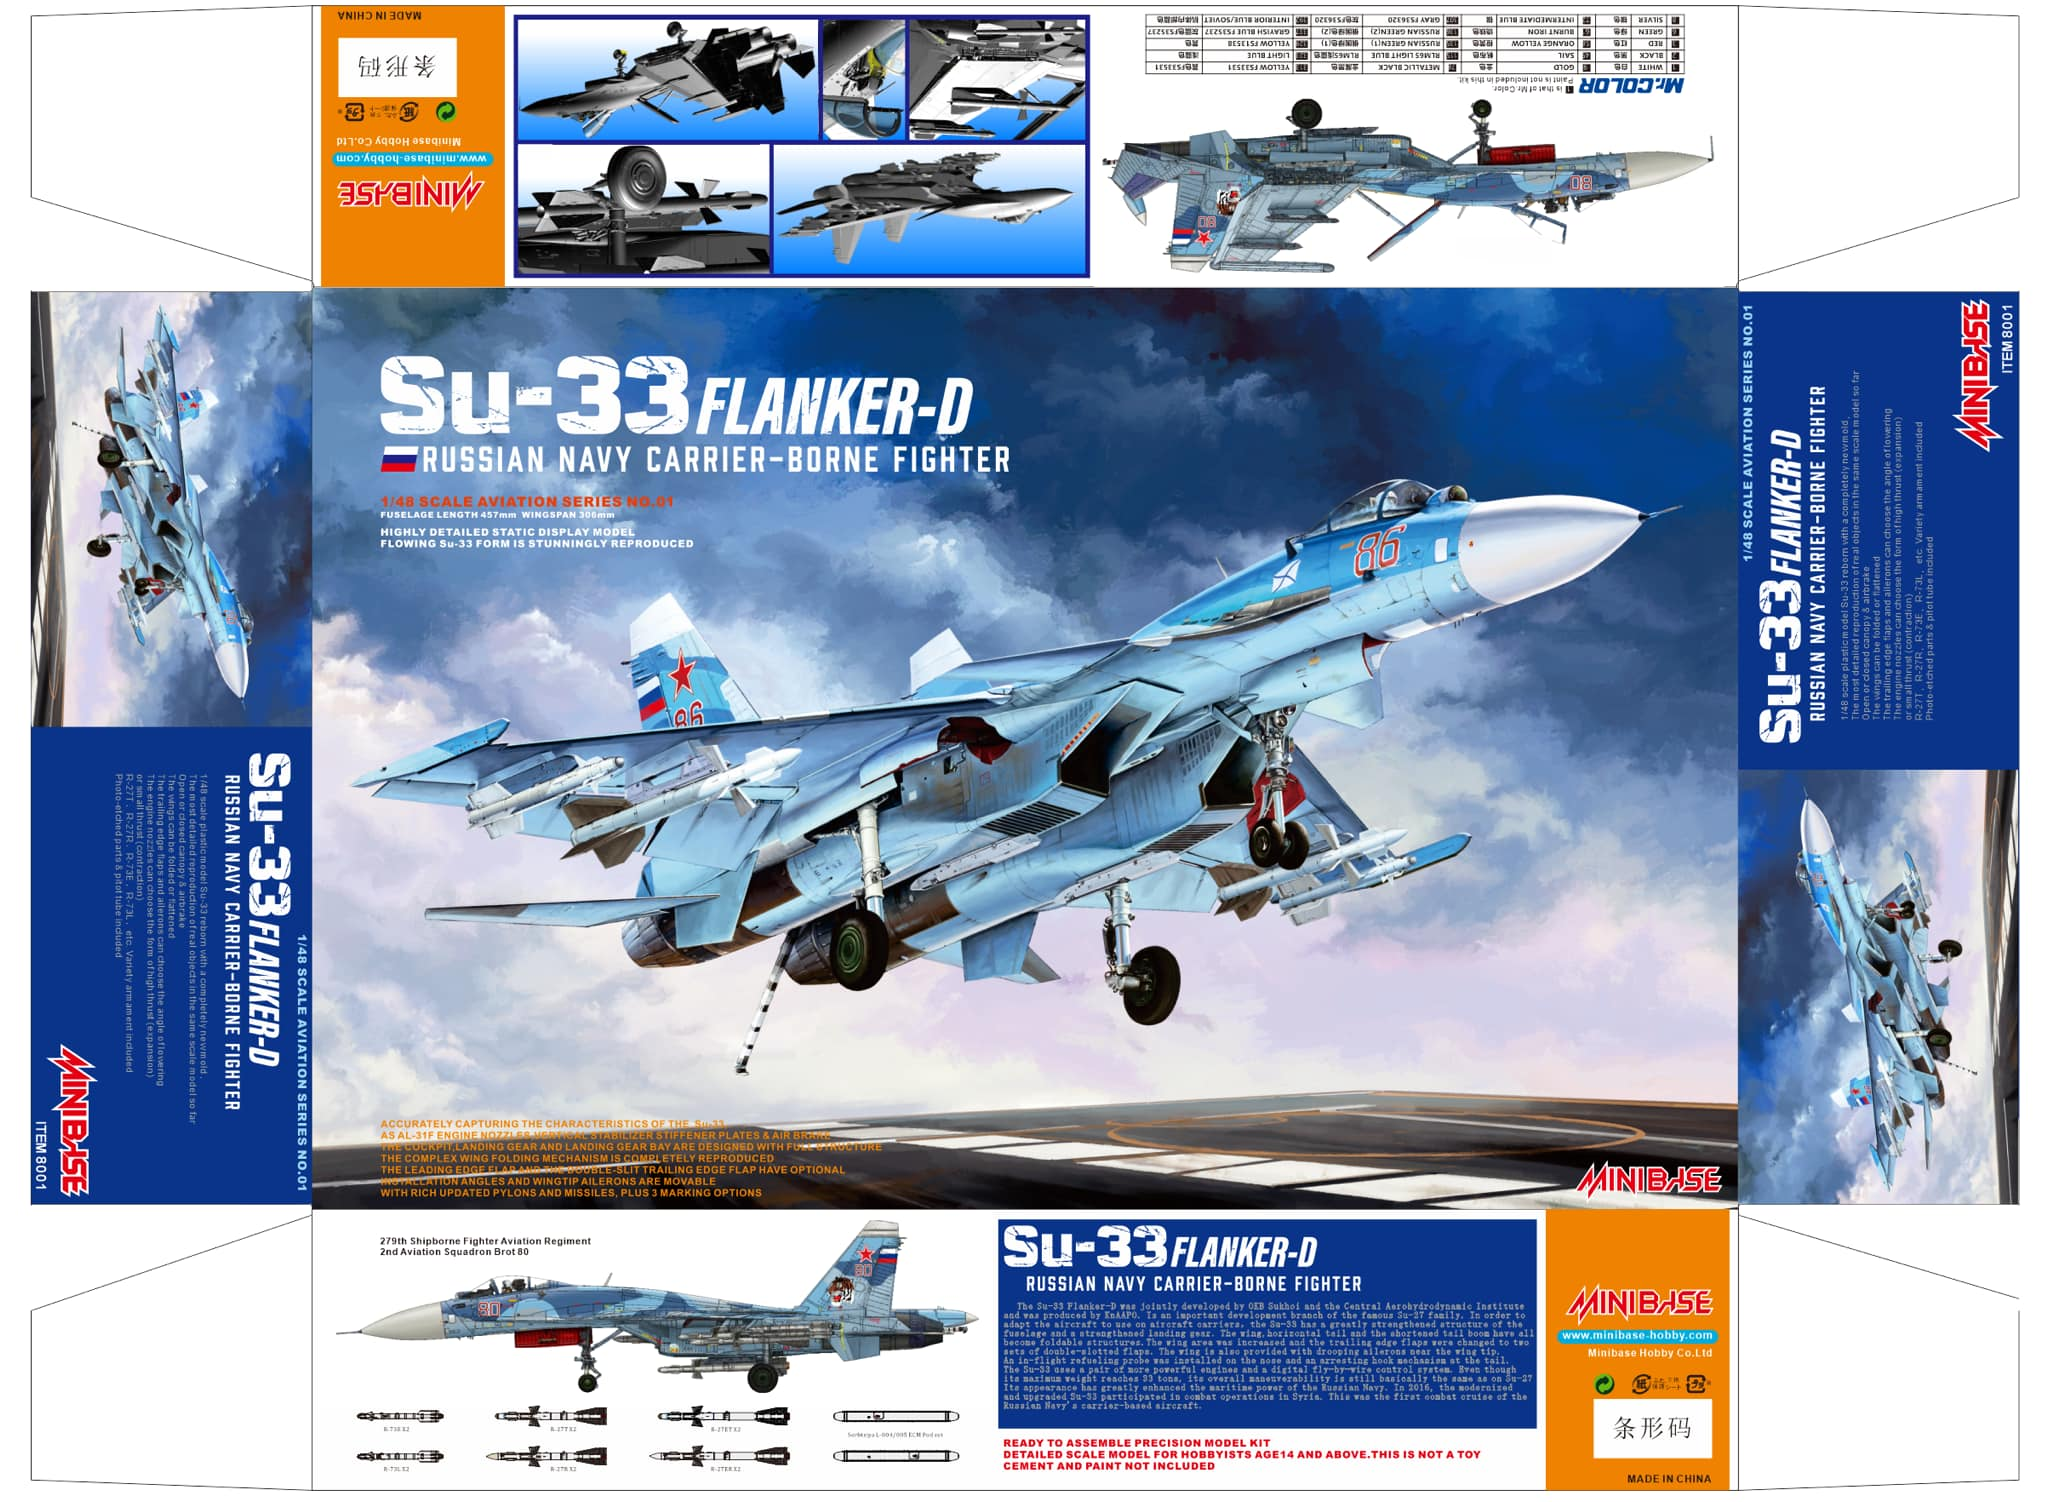 D MINIBASE 8001 1//48 Russian Navy Carrier-Borne Fighter Su-33 Flanker